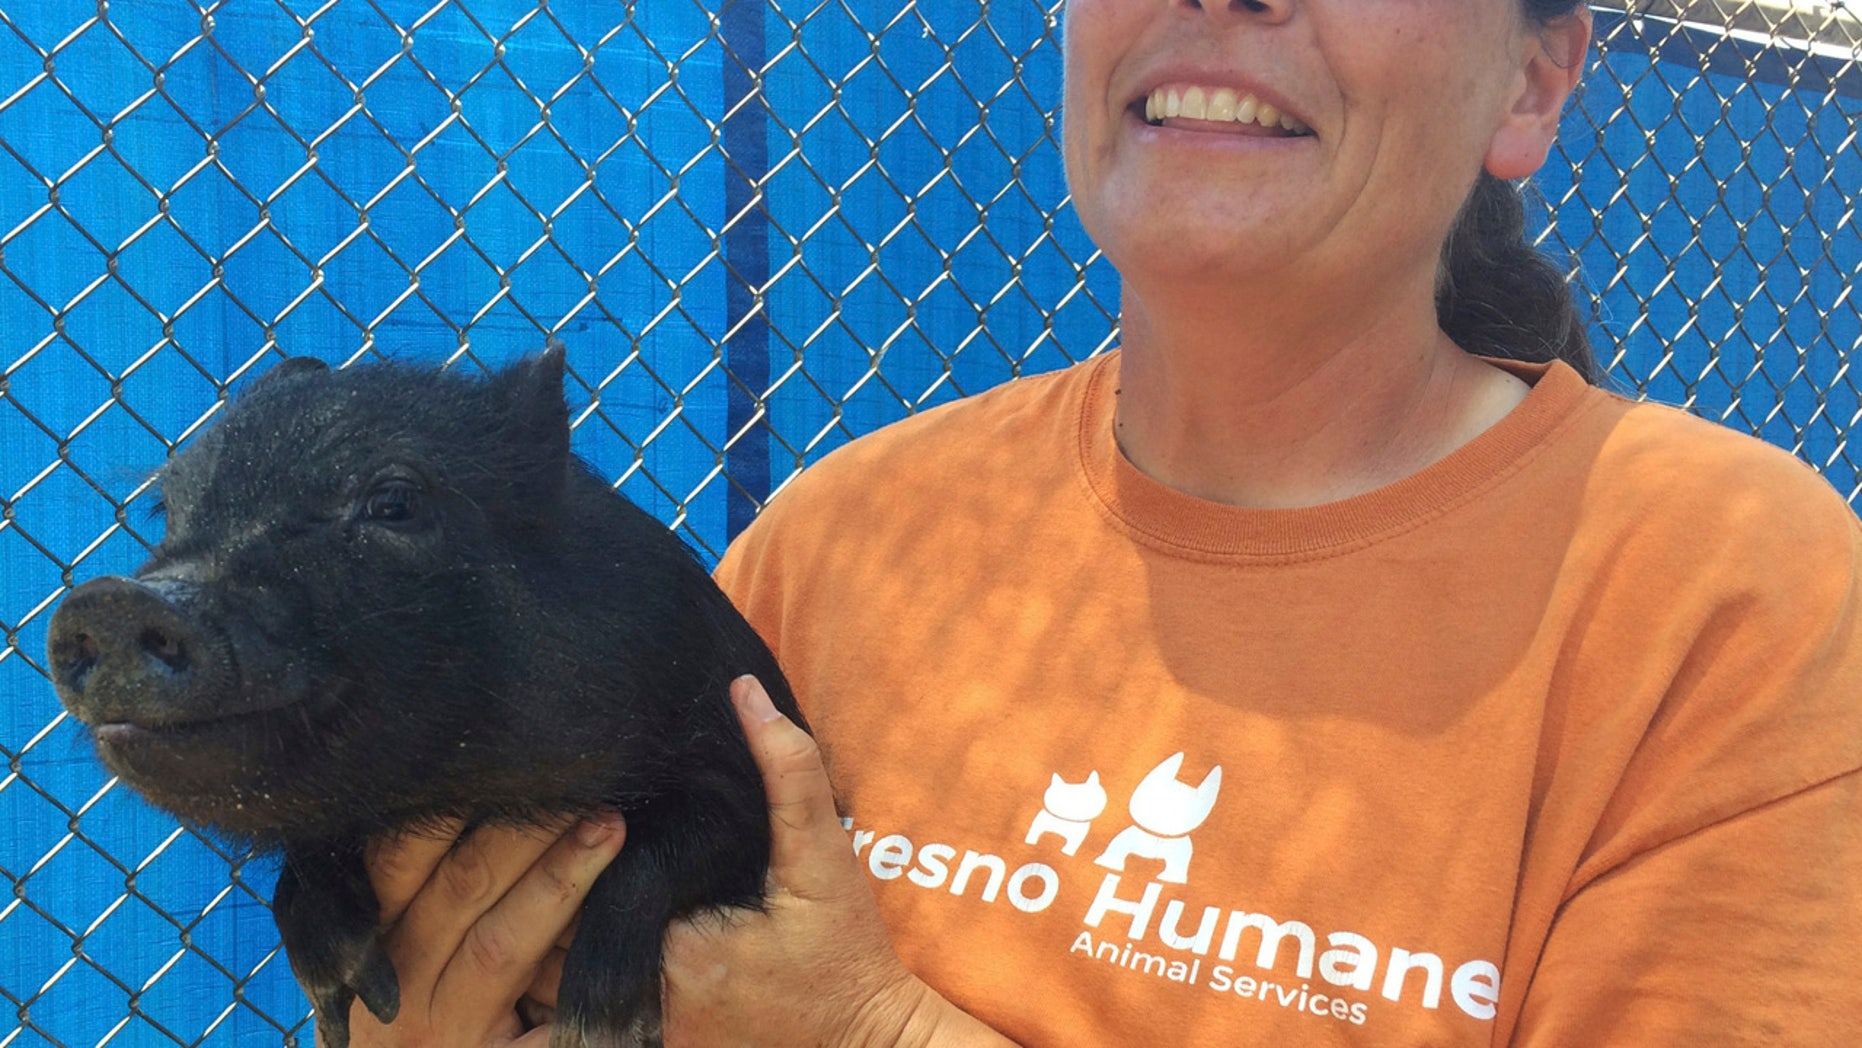 In this Monday, June 19, 2017 photo Tracy Crutchfield, Fresno Humane Animal Services shelter manager, holds one of three pigs found in a trailer that registered 107 degrees Fahrenheit the county found Friday, June 16 in Fresno, Calif.